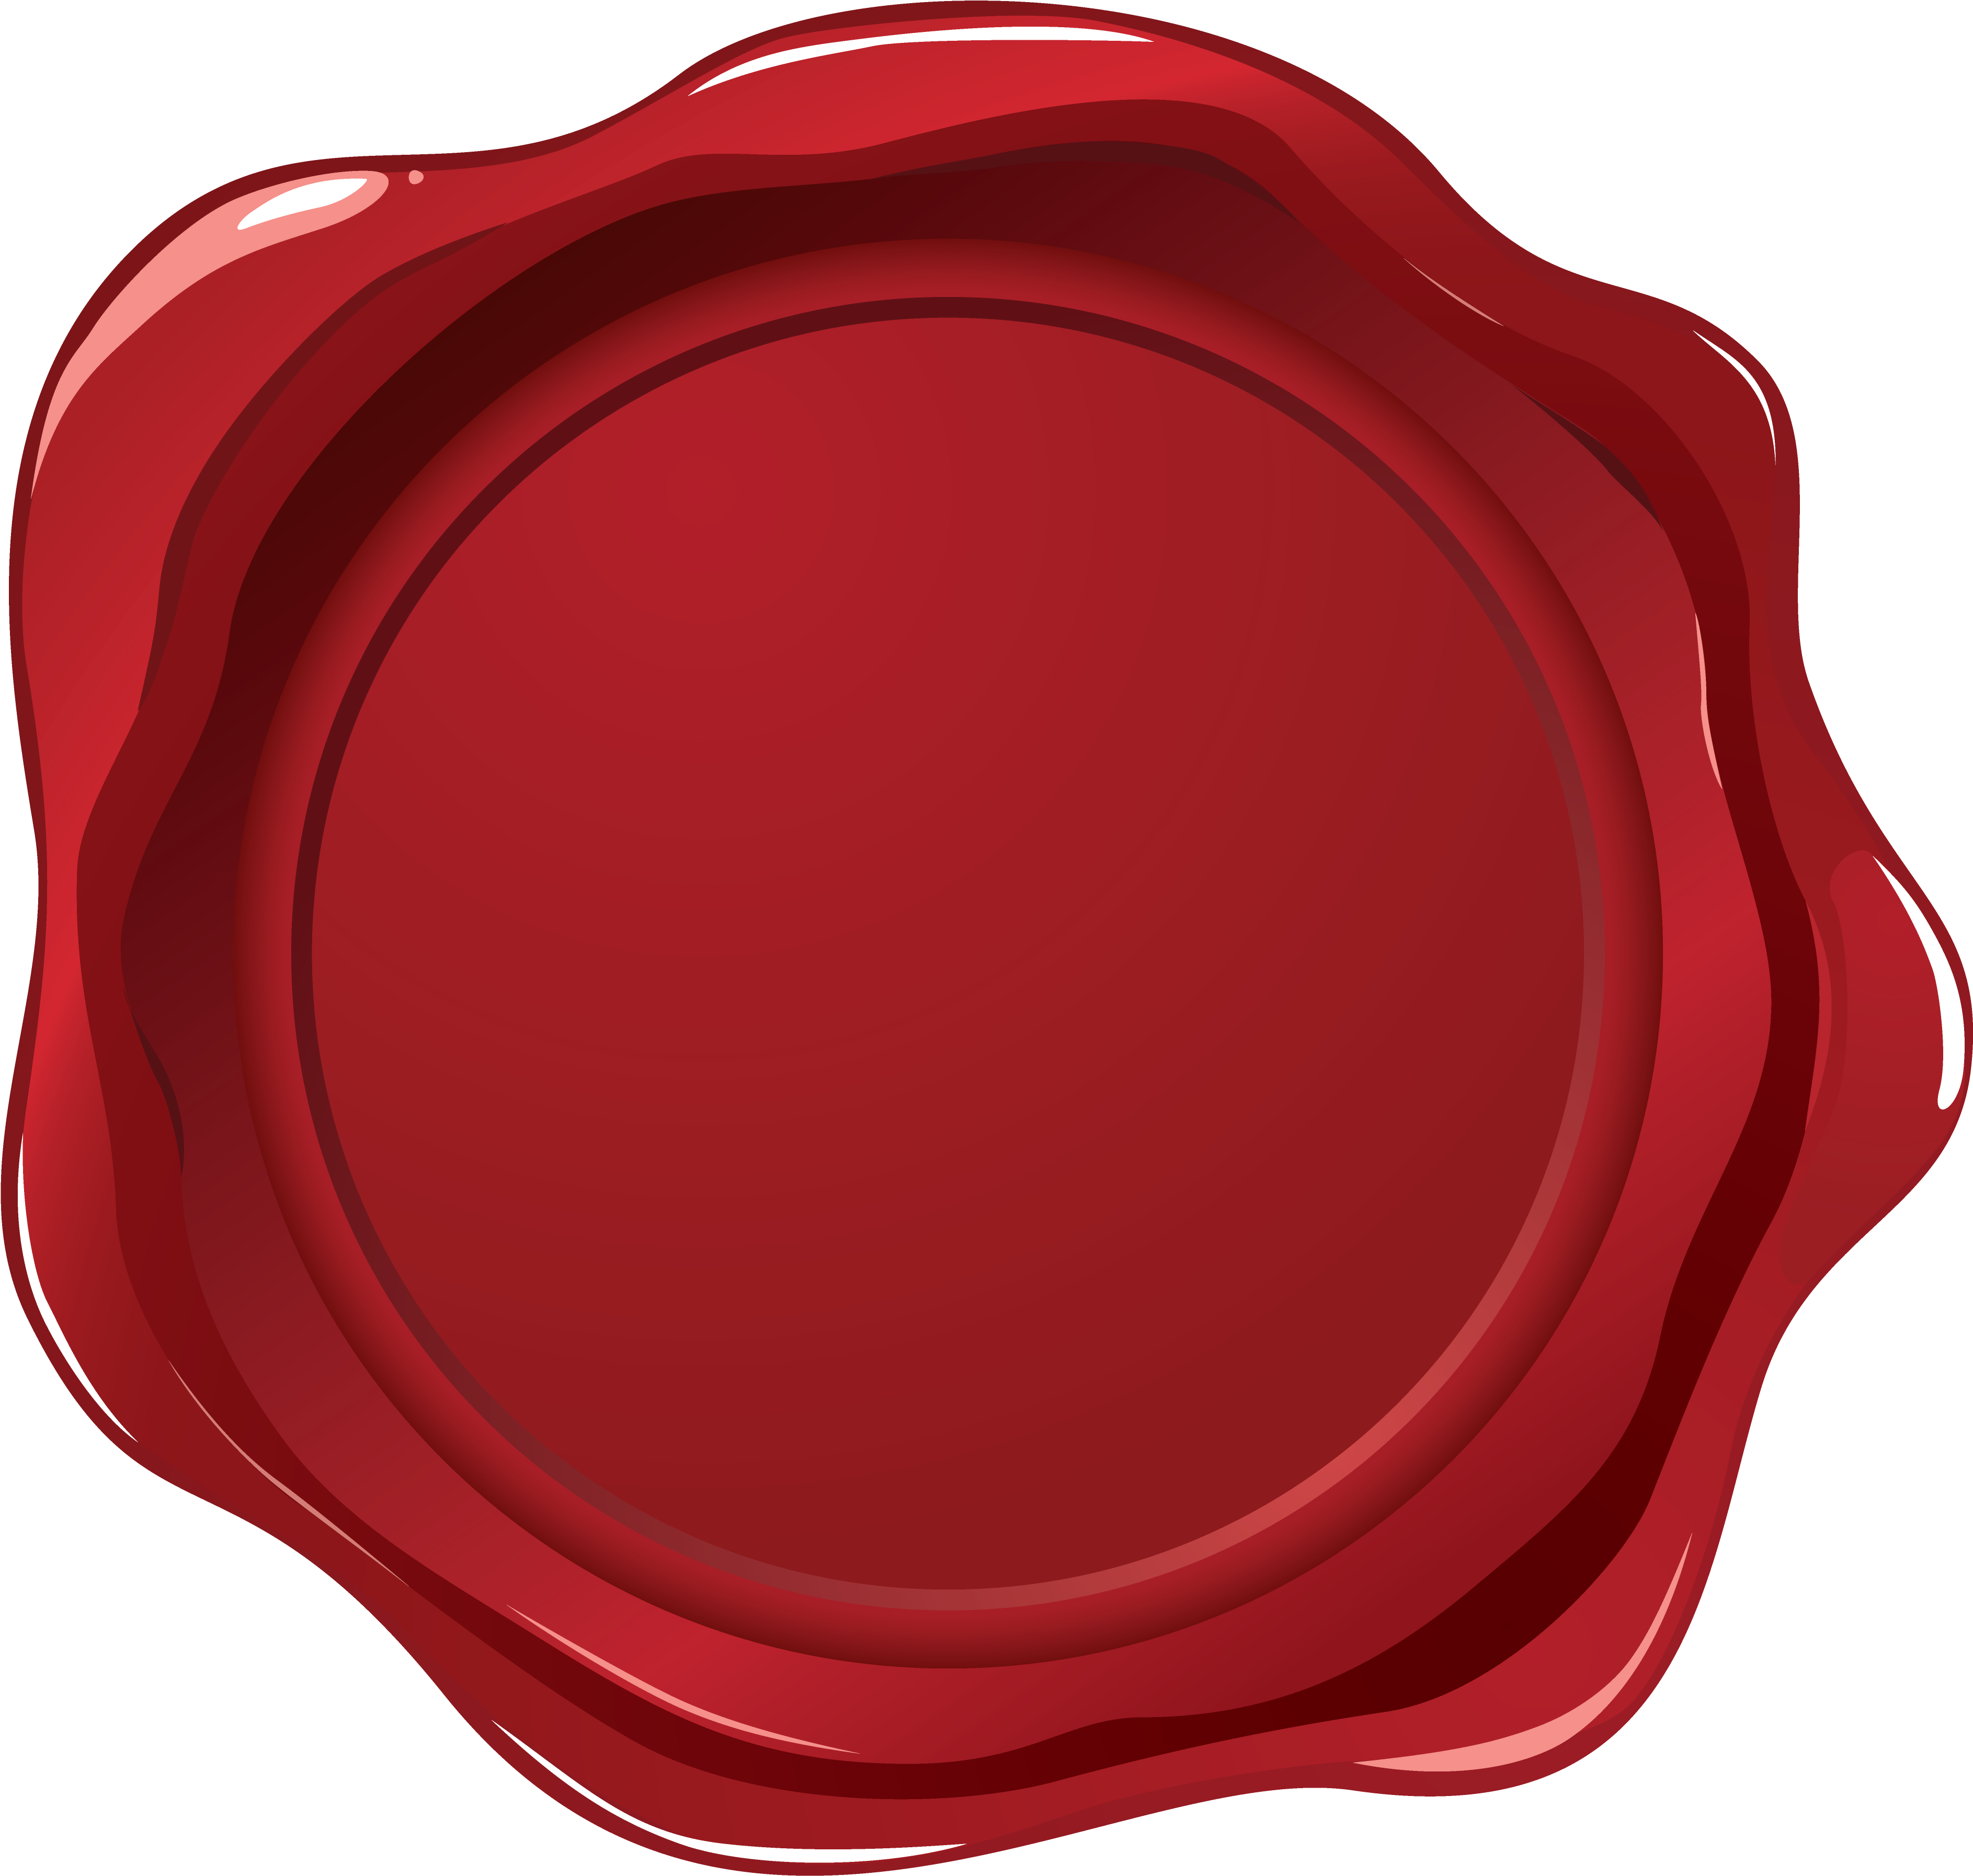 pngfind.com-blank-wax-seal-png-6815001.png